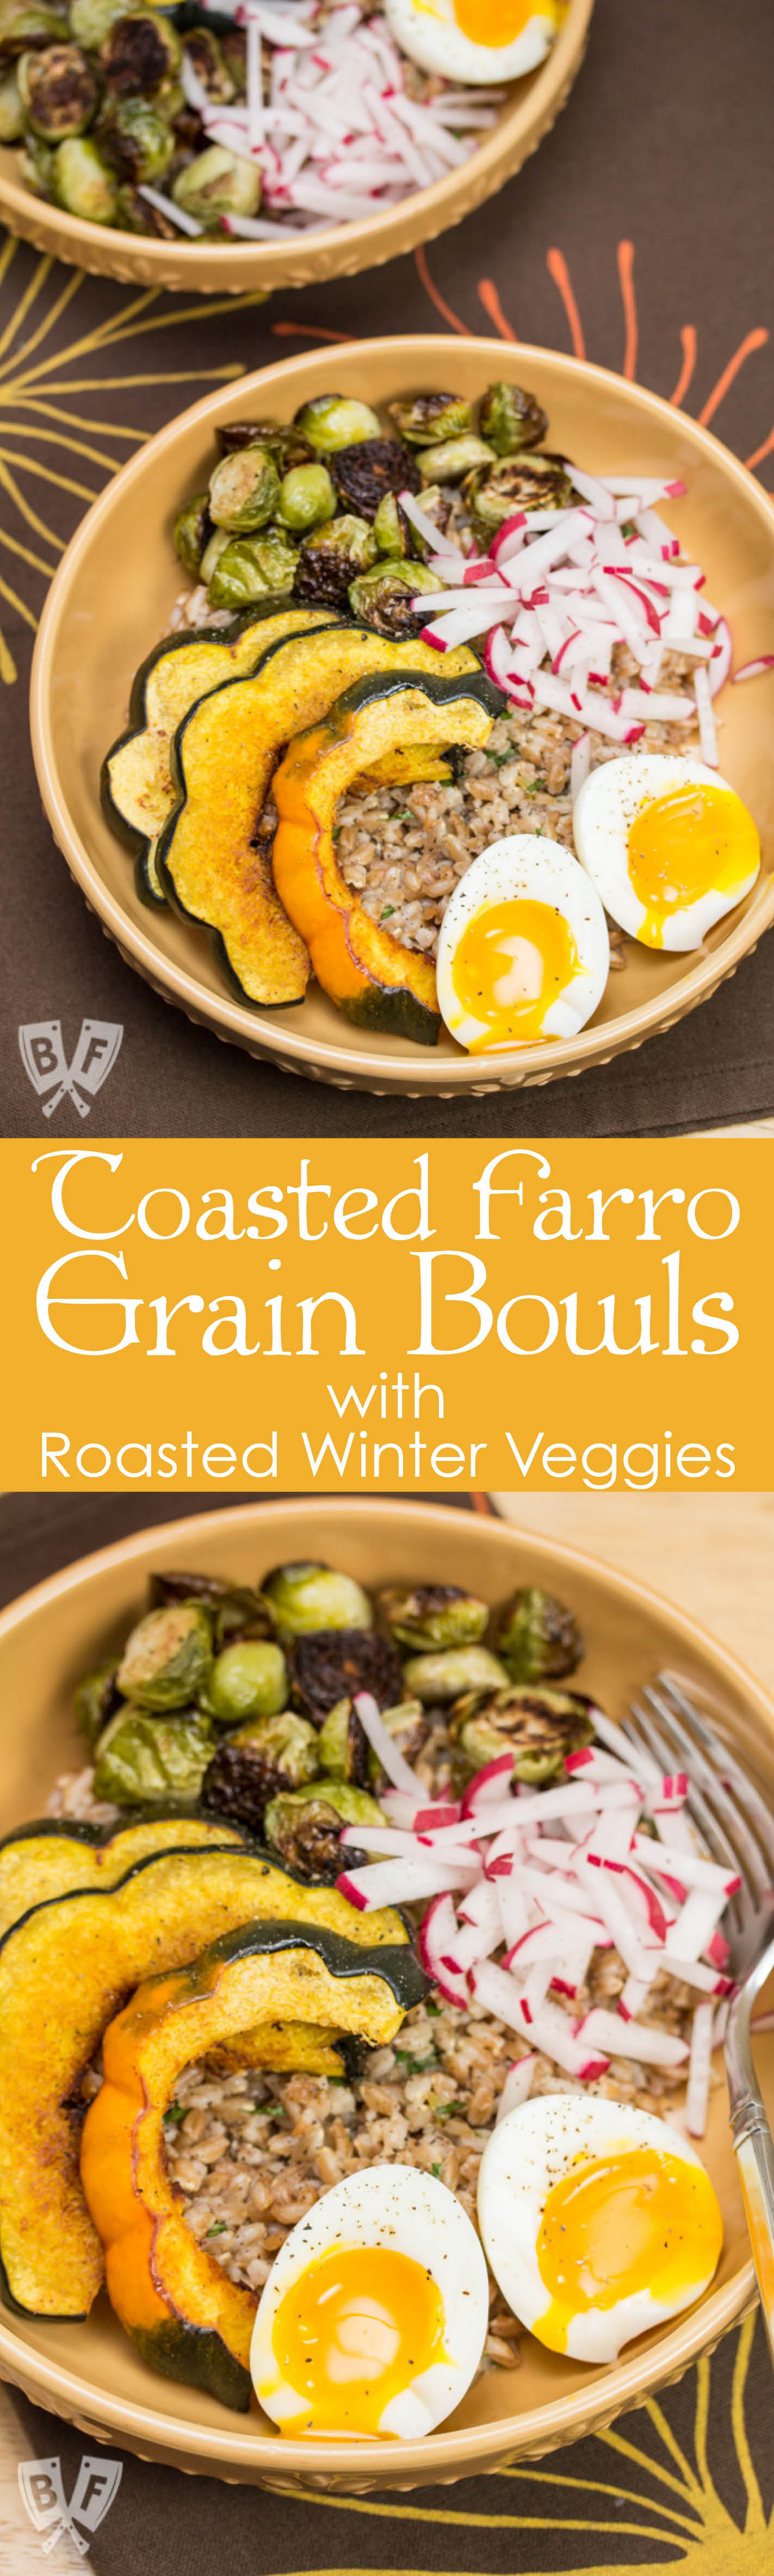 Toasted Farro Grain Bowls with Roasted Winter Veggies: Chase away the winter blues with this hearty, veggie-packed grain bowl. Top it with a runny egg for the ultimate comfort food upgrade! #VillageHarvestVariety #ad